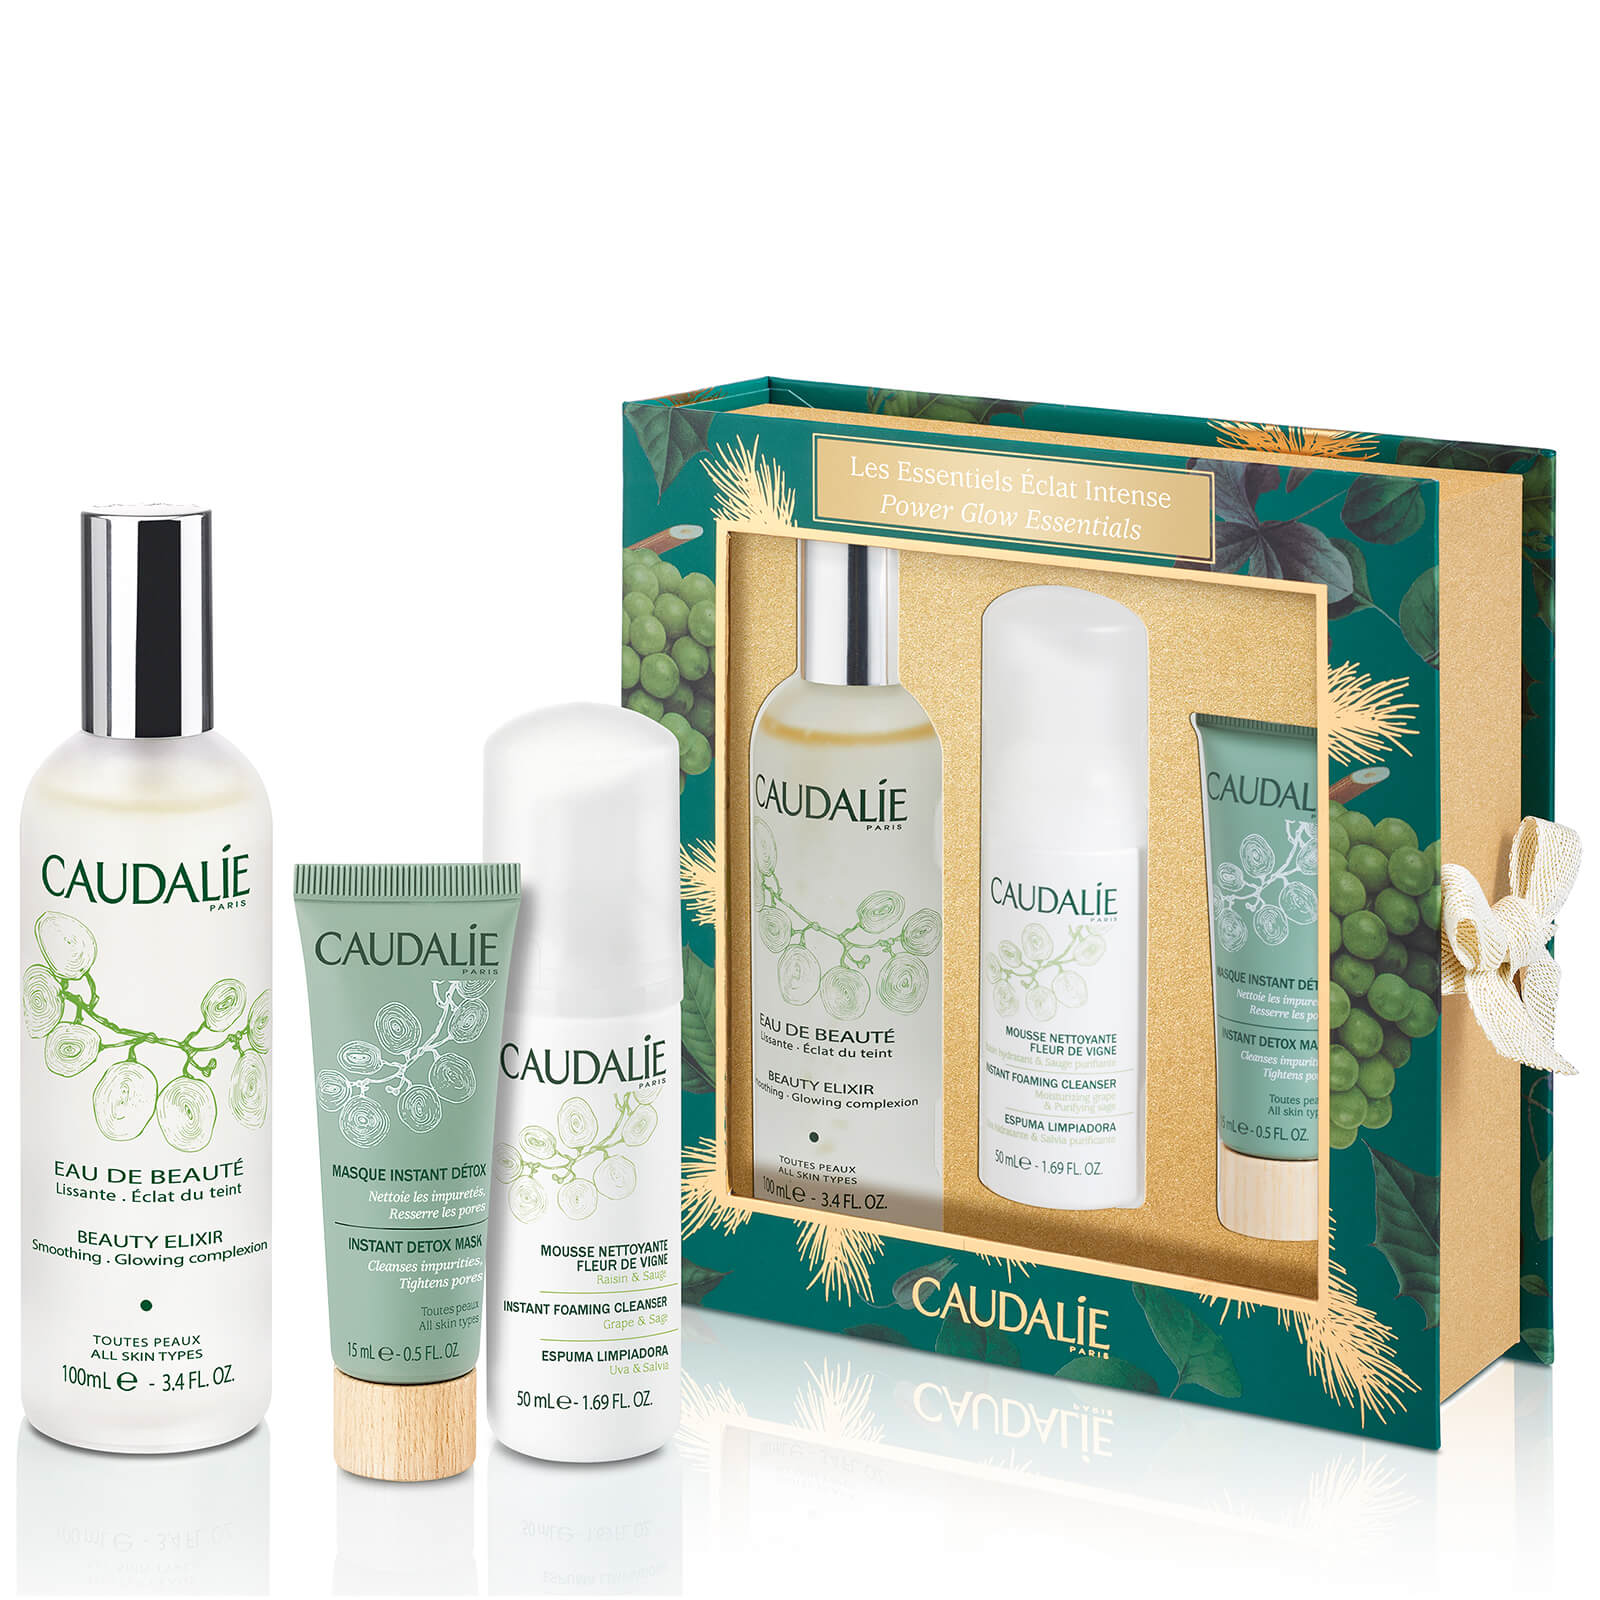 Caudalie Beauty Glow Essentials Worth 4400